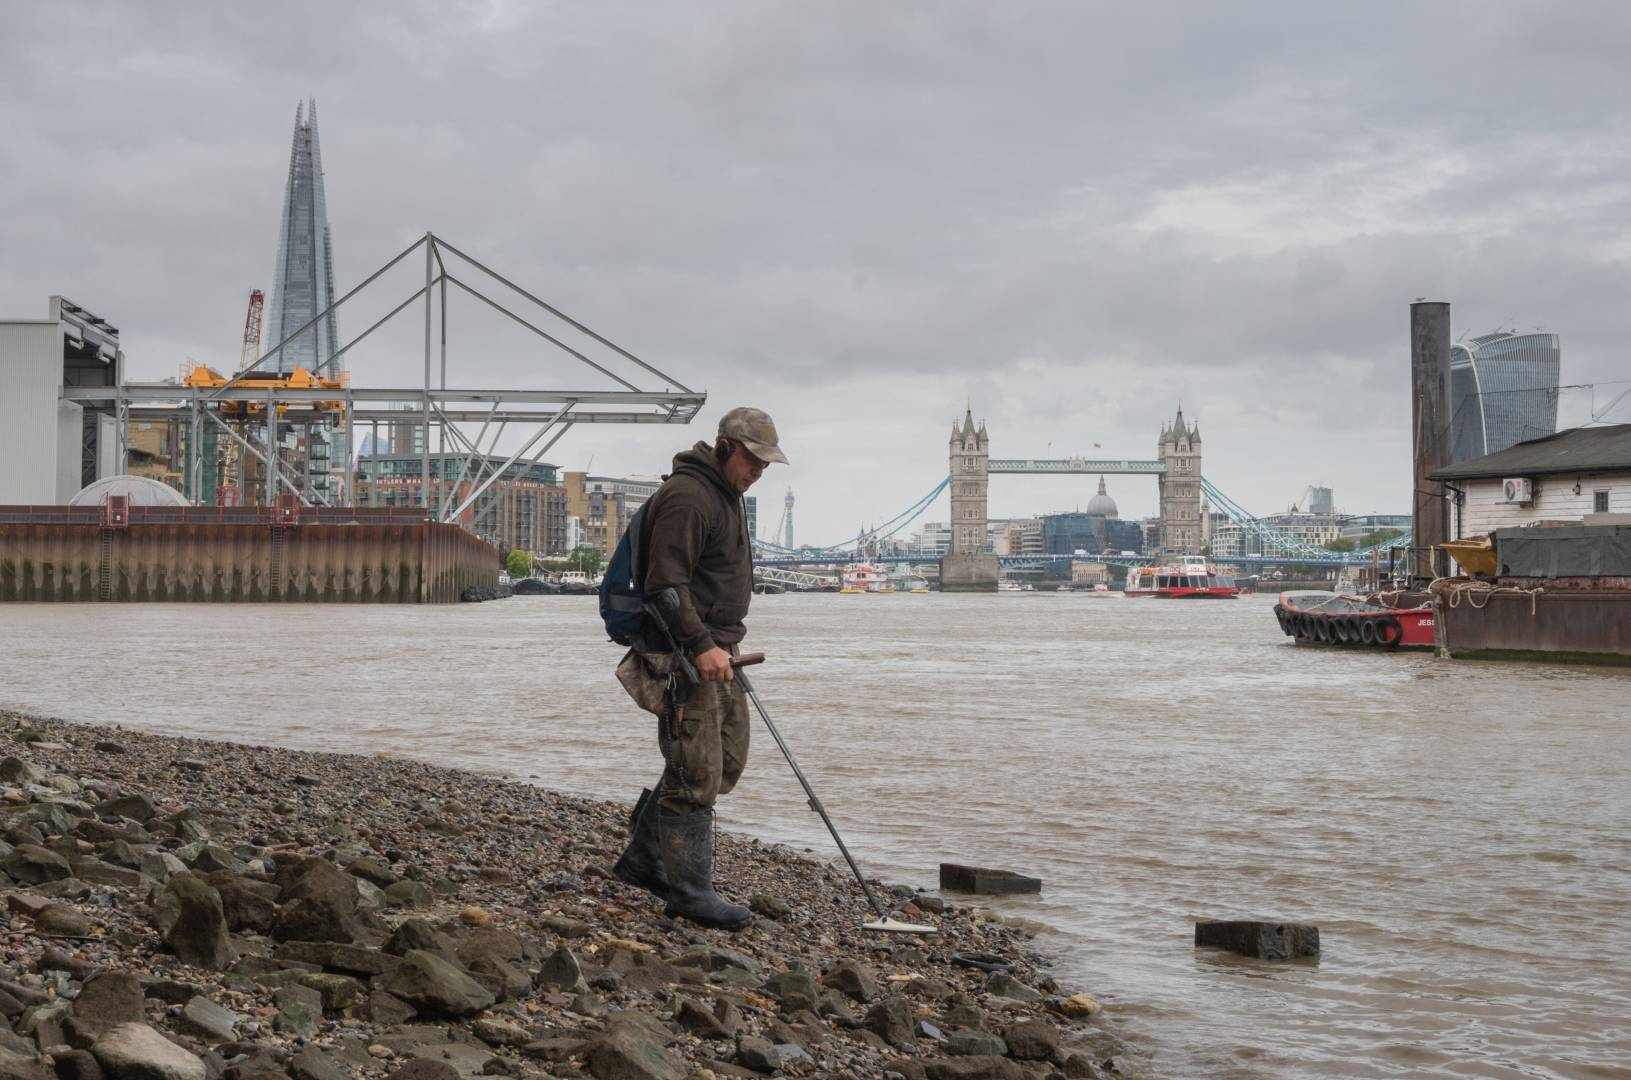 Using a modern metal detector to search for ancient treasures